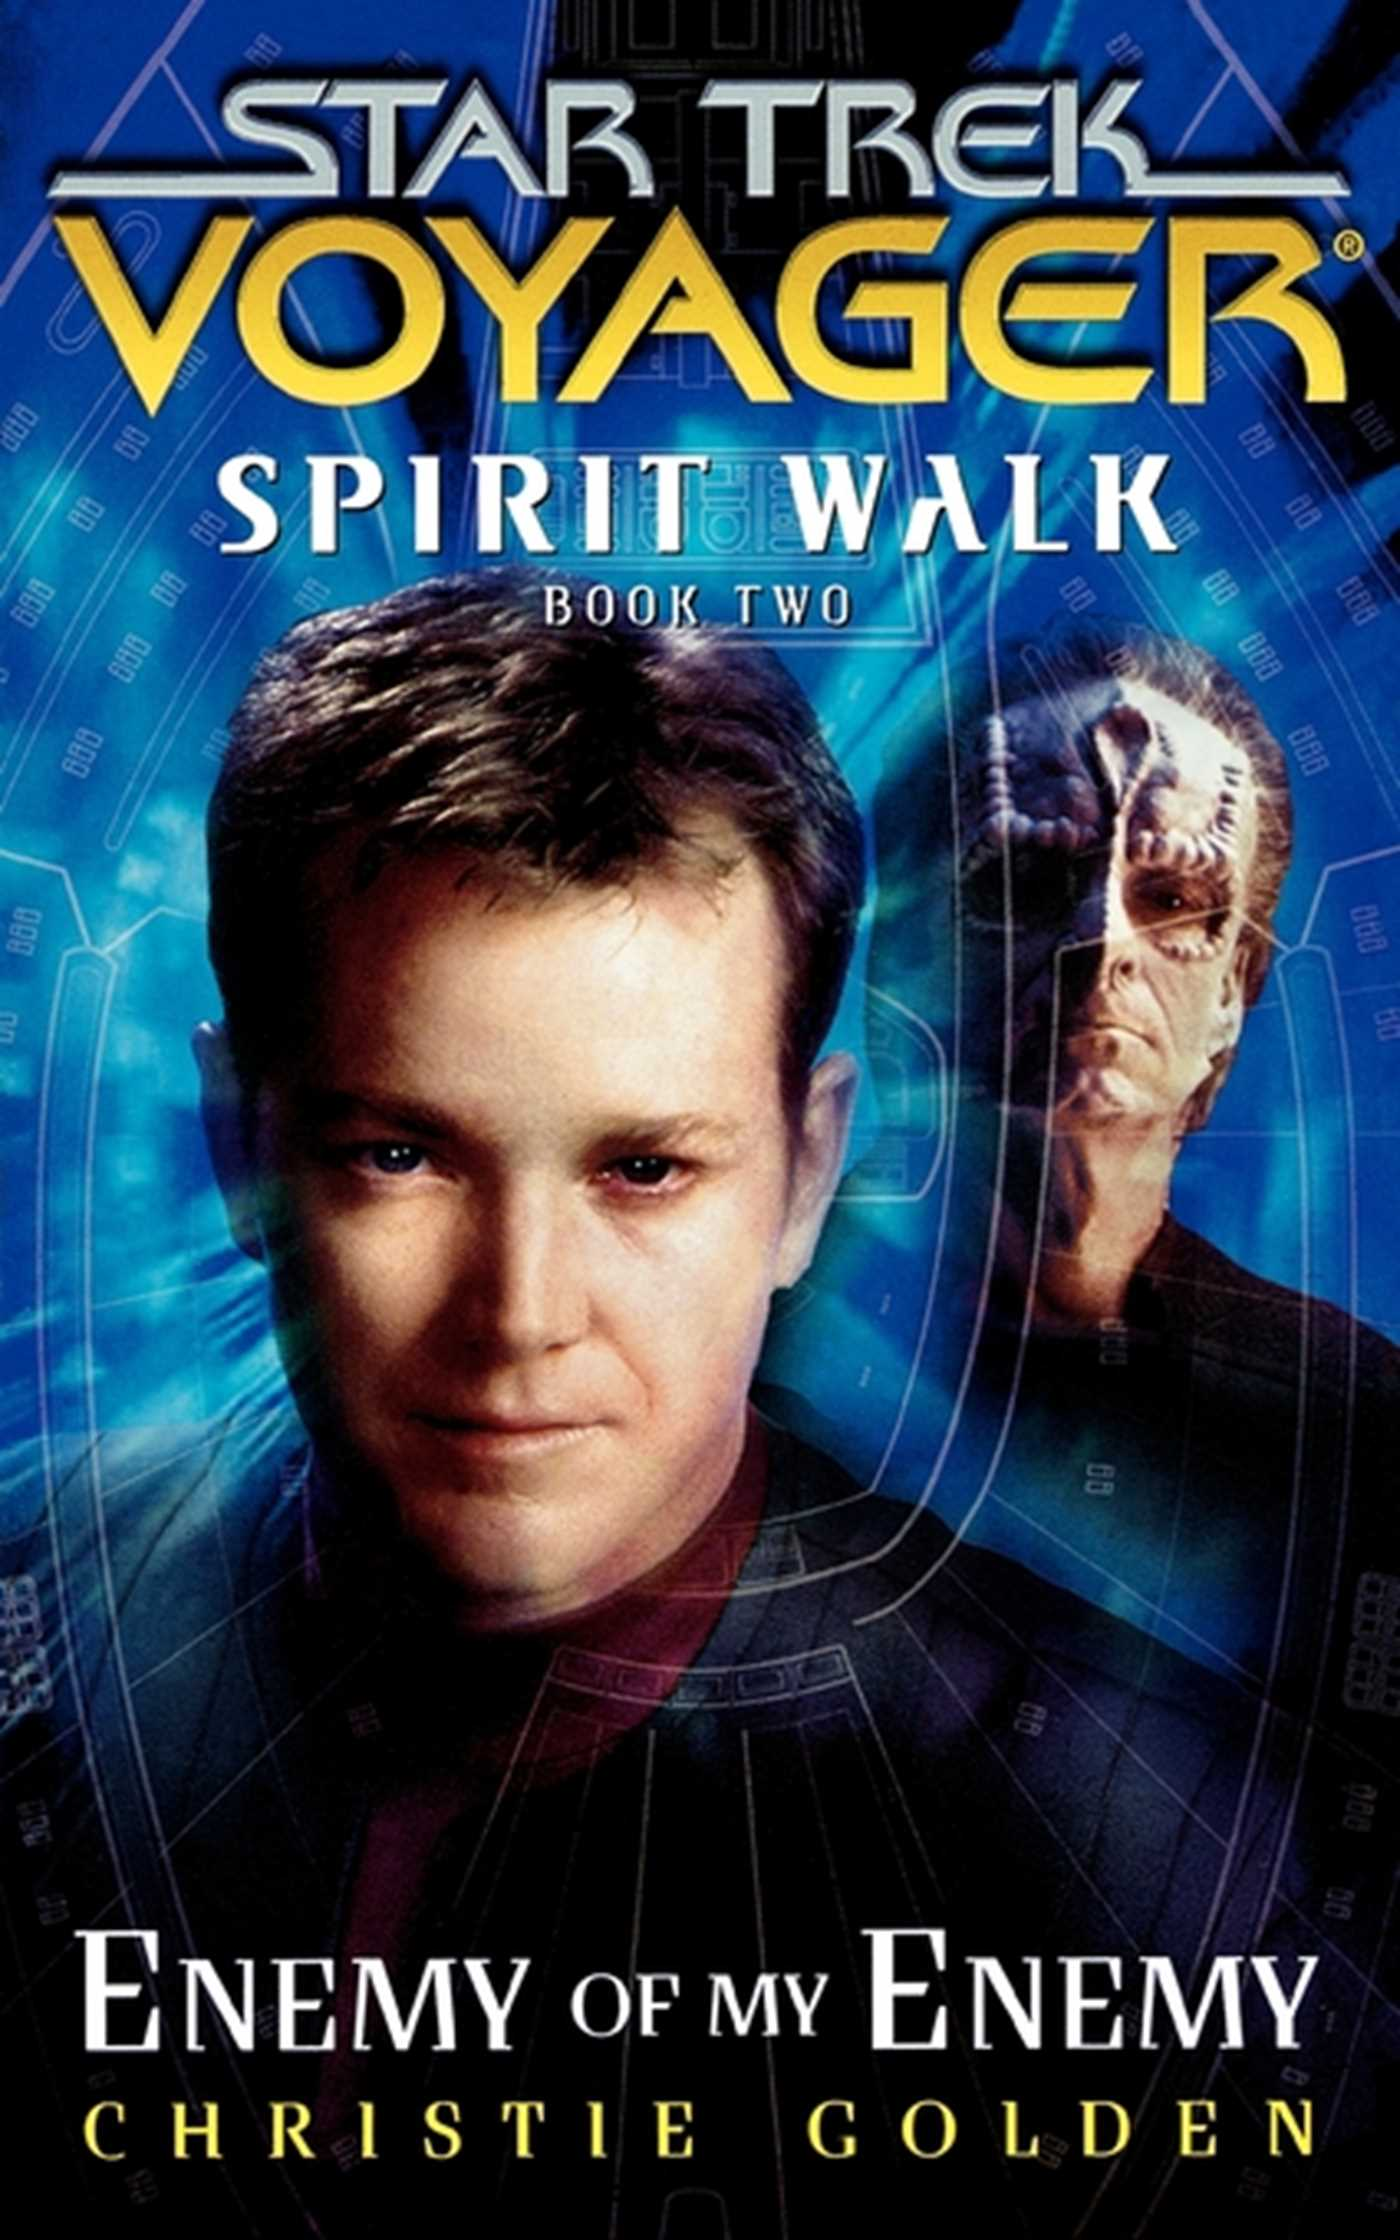 Star trek voyager spirit walk 2 enemy of my enemy 9781416500001 hr